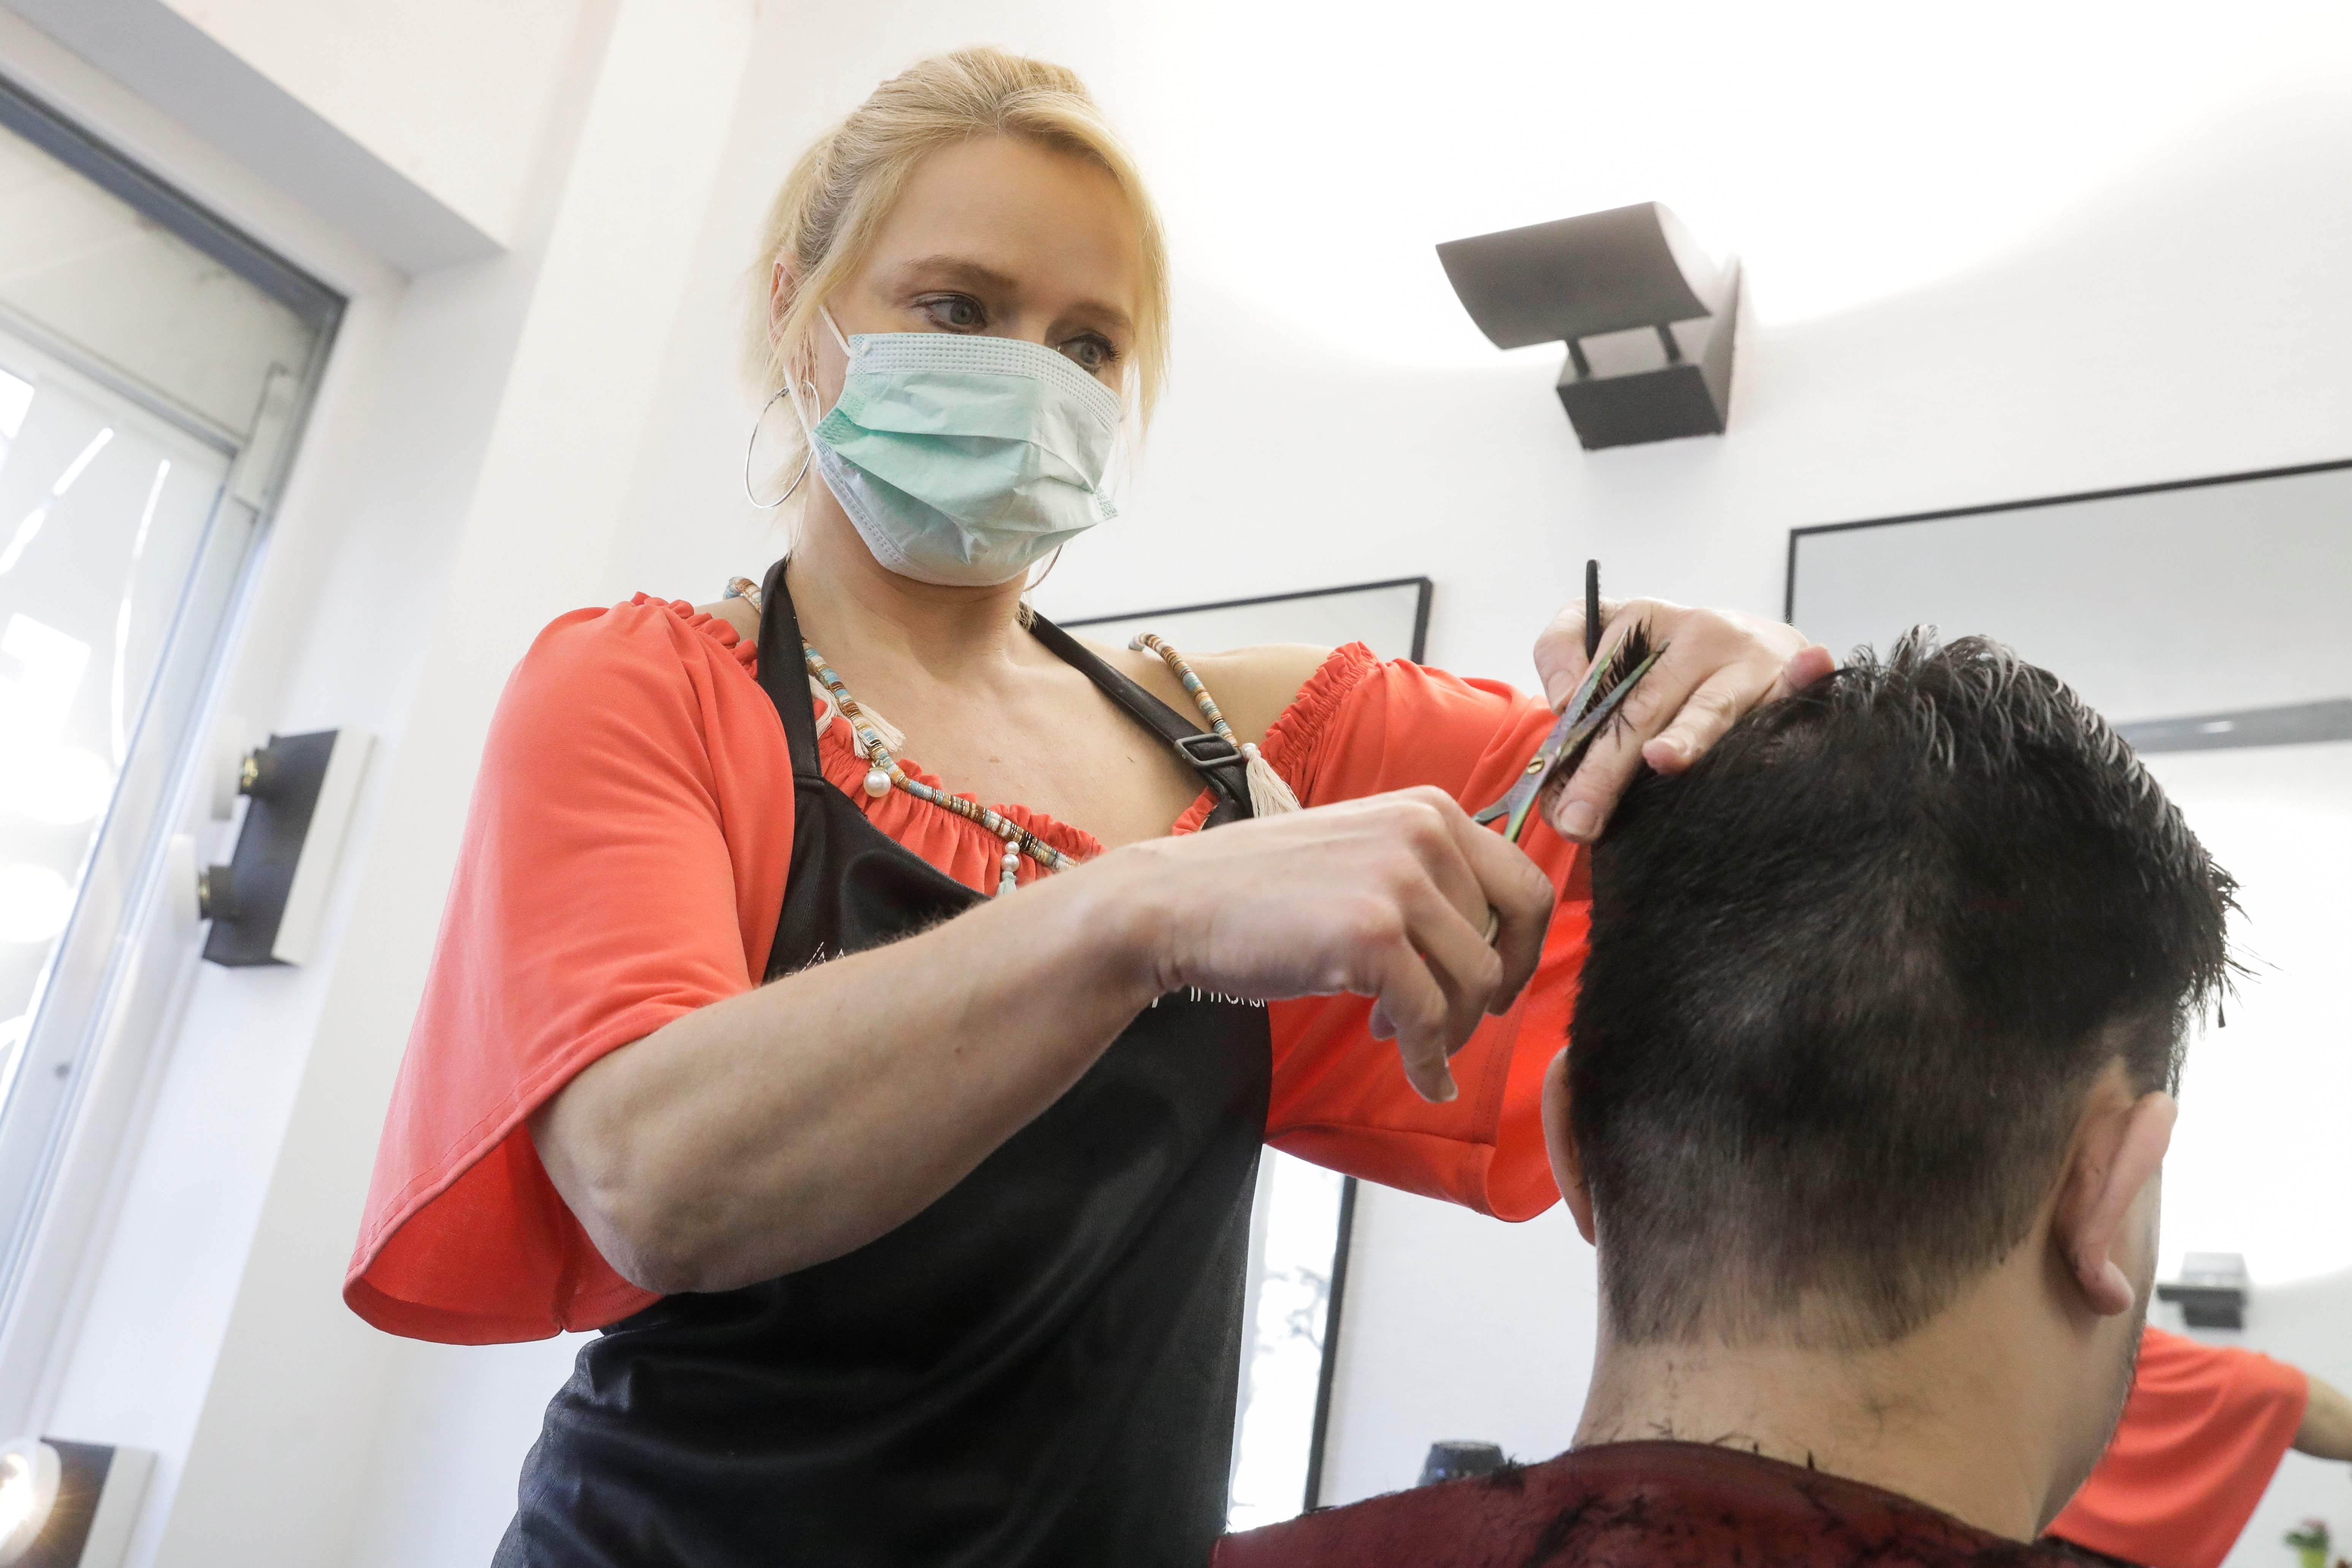 Coronavirus Hairstylists Making House Calls What You Need To Know